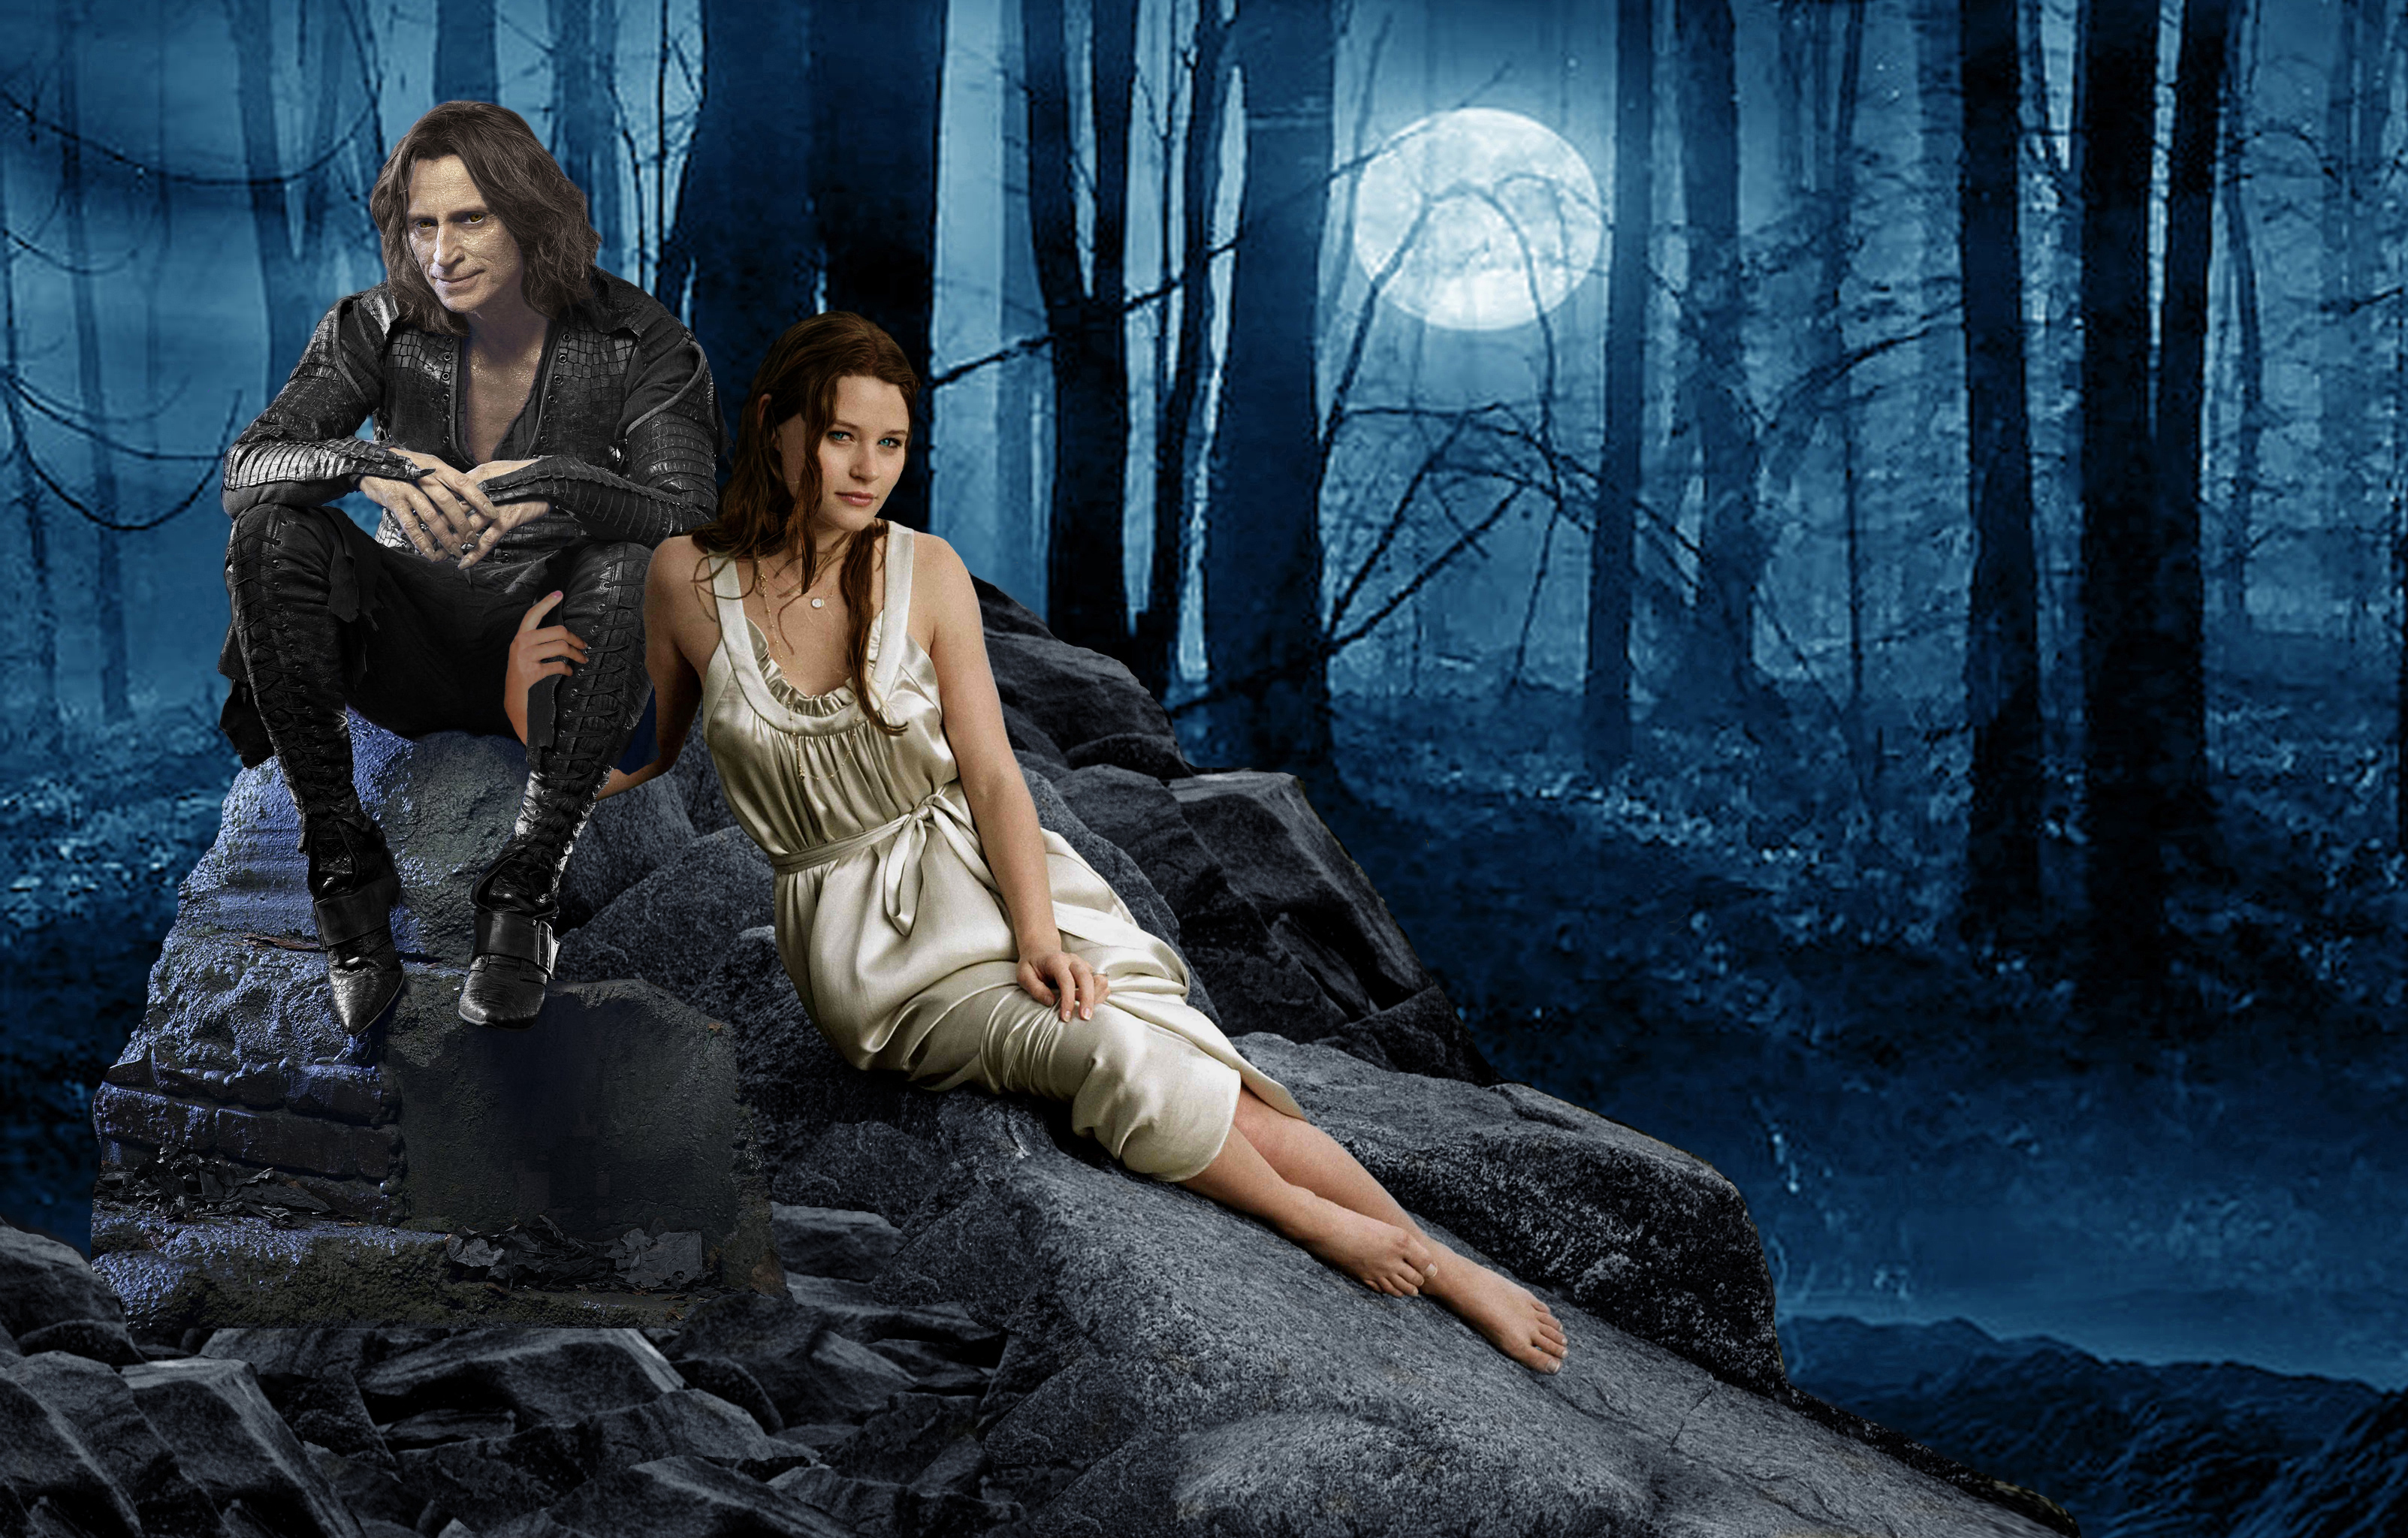 Rumplestiltskin Belle HQ once upon a time 32672997 3206 2048 - Once Upon a Time / Yabanc� Dizi